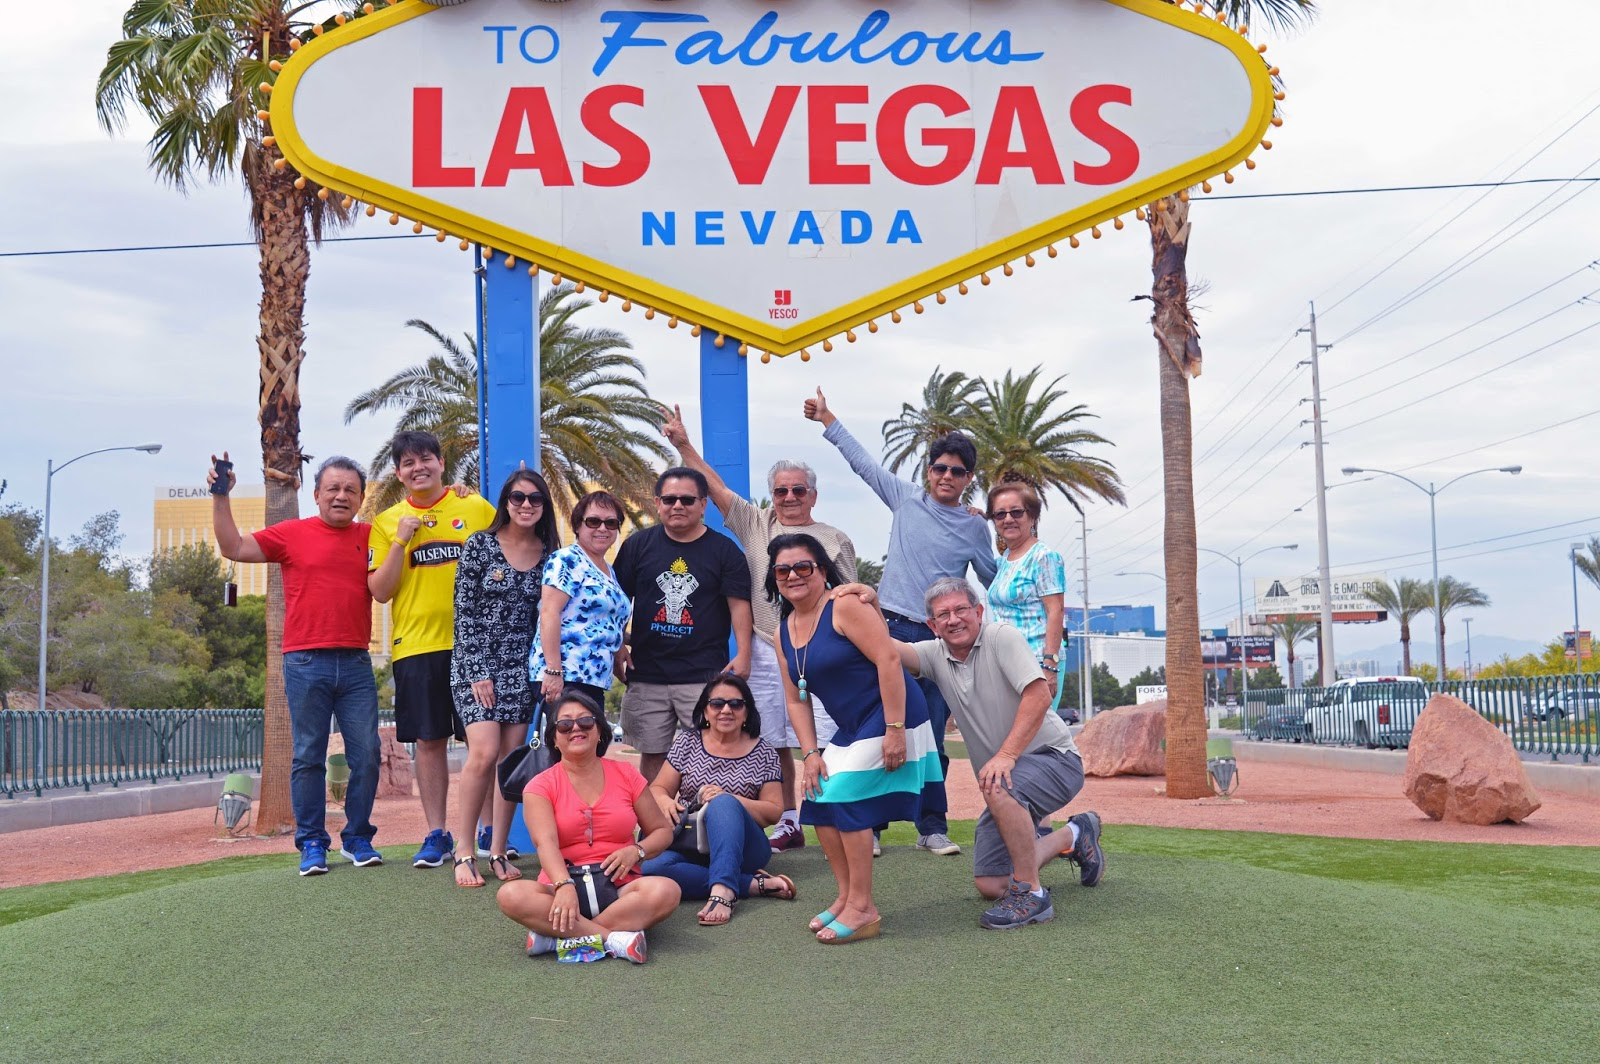 silvia-armas-usa-diary-trip-sunset-travel-fashion-blogger-ecuador-latina-las-vegas-los-angeles-texas-california-style-landscapes-family